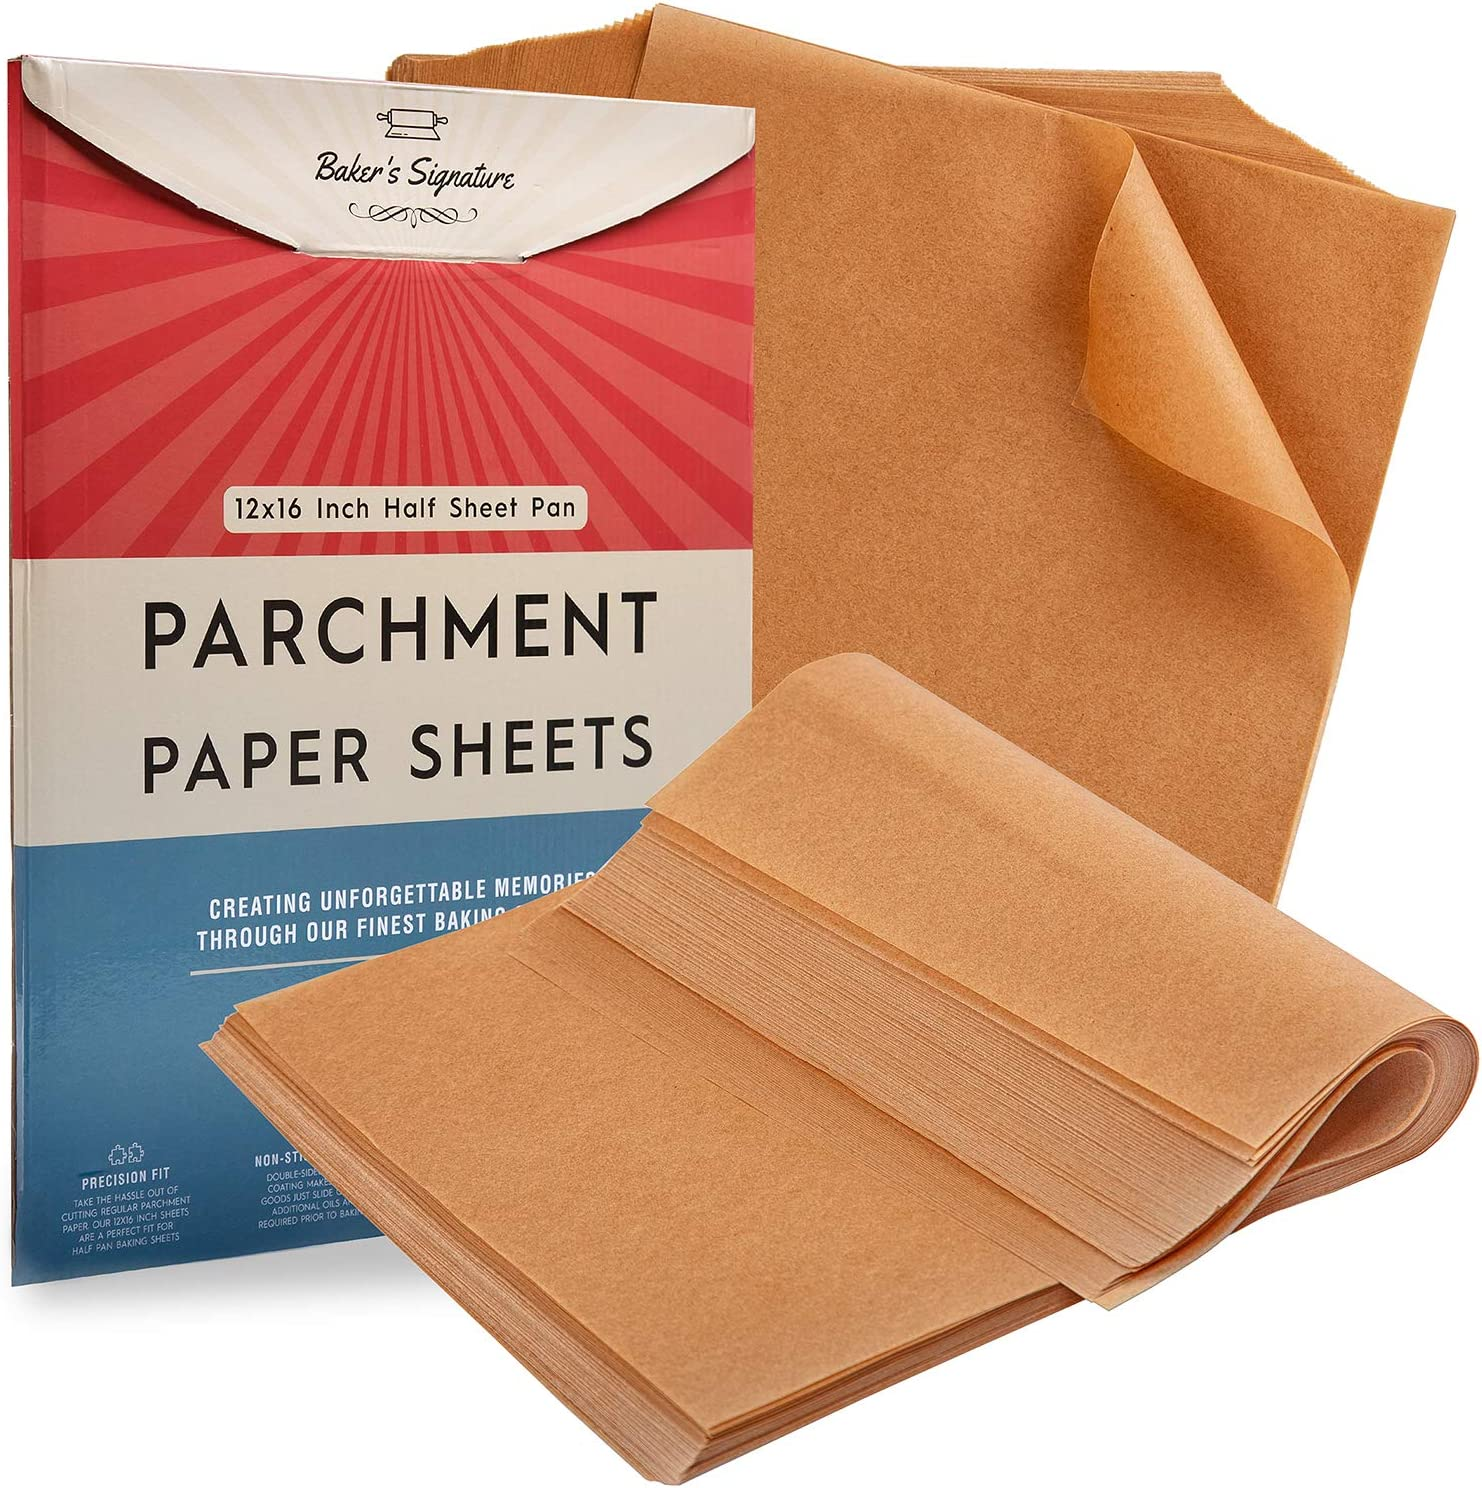 Parchment Paper Baking Sheets by Baker's Signature | Precut Non-Stick & Unbleached - Will Not Curl or Burn - Non-Toxic & Comes in Convenient Packaging - 12x16 Inch Pack of 120: Kitchen & Dining